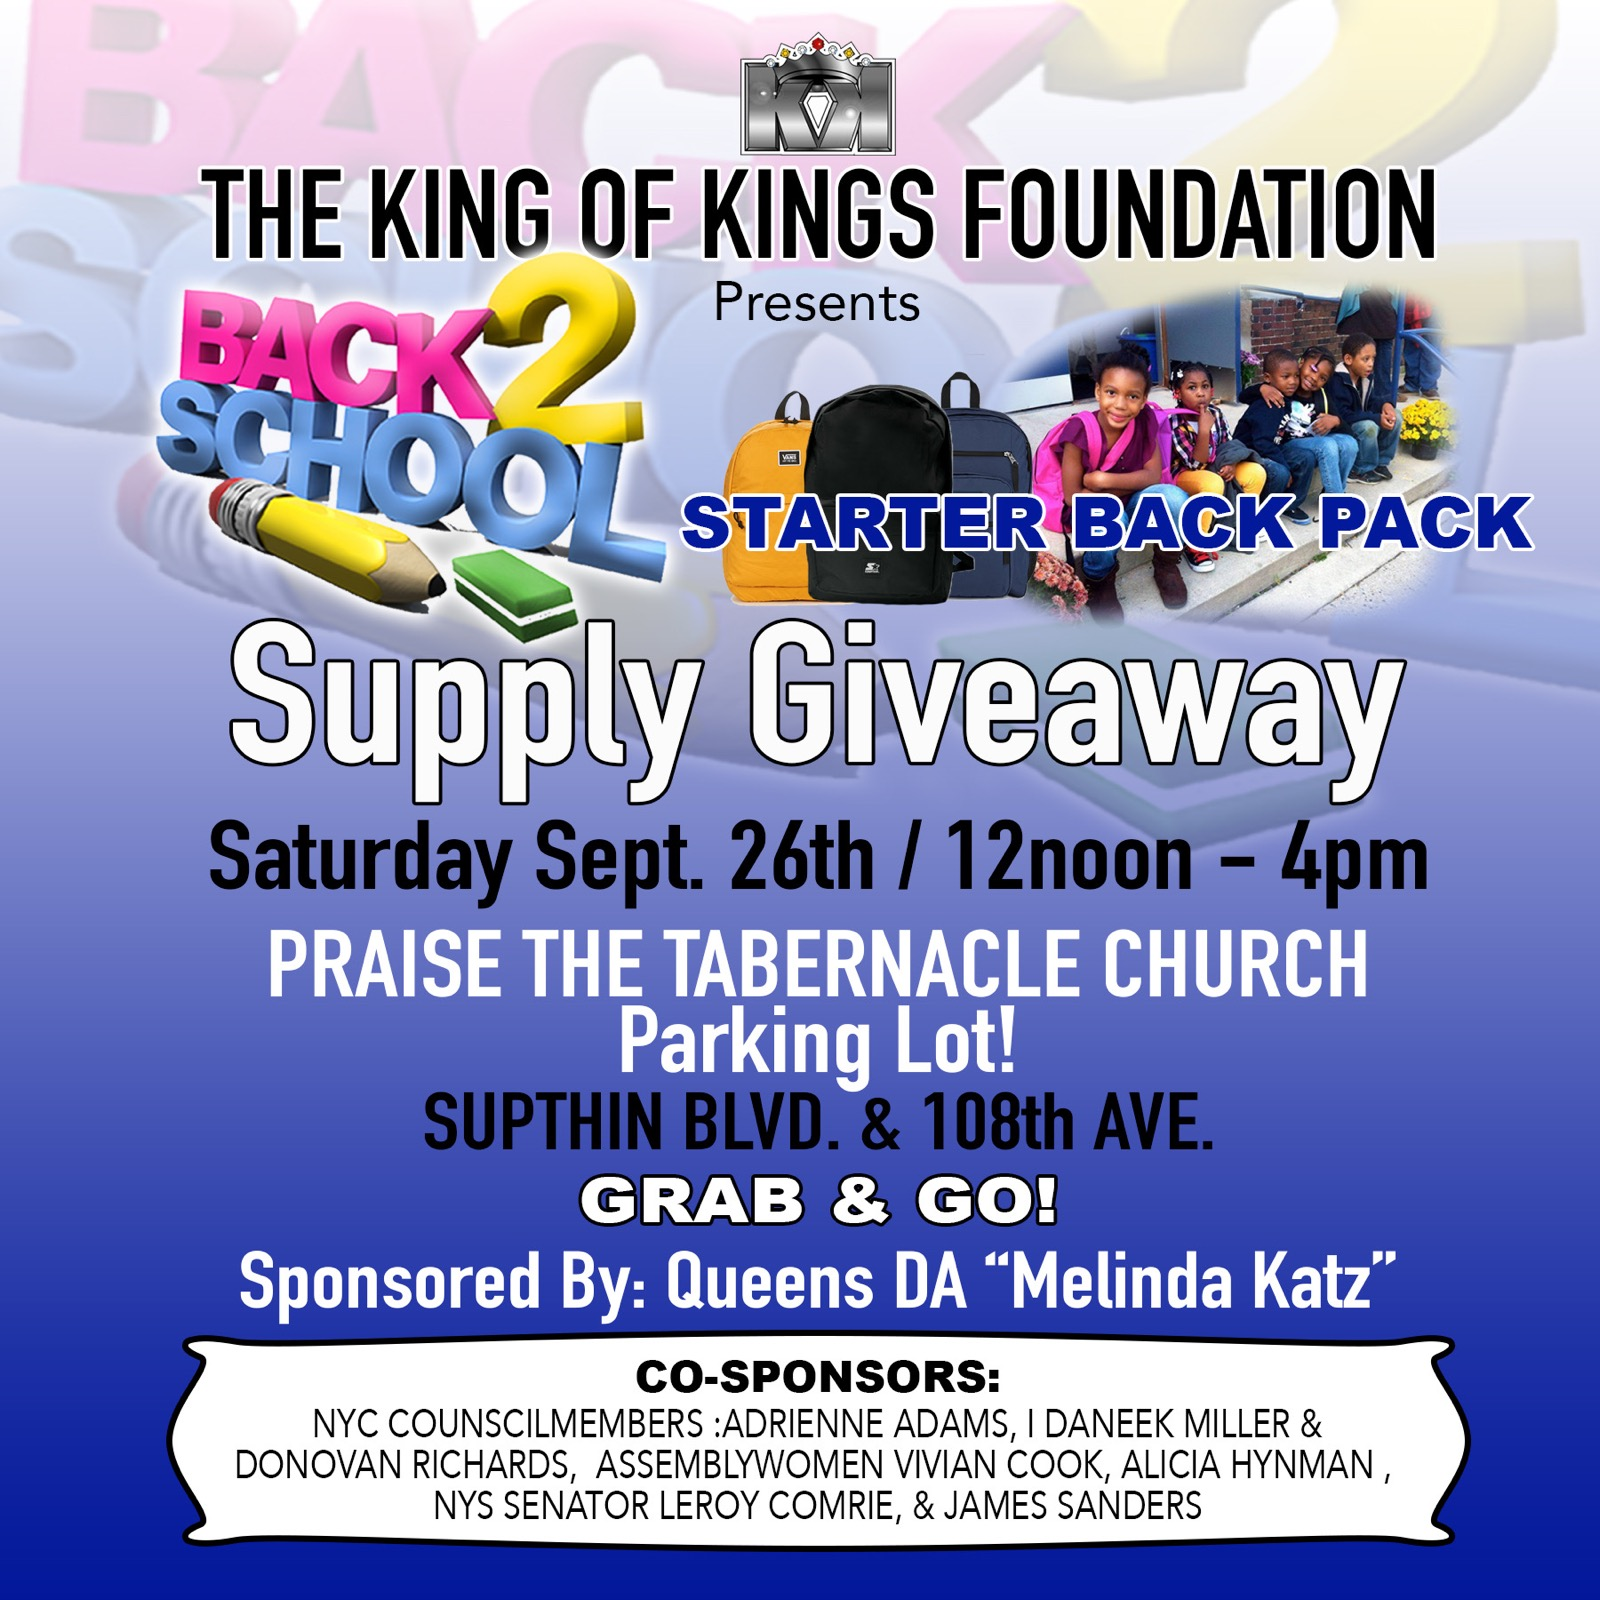 10th Annual Back 2 School Supply Giveaway